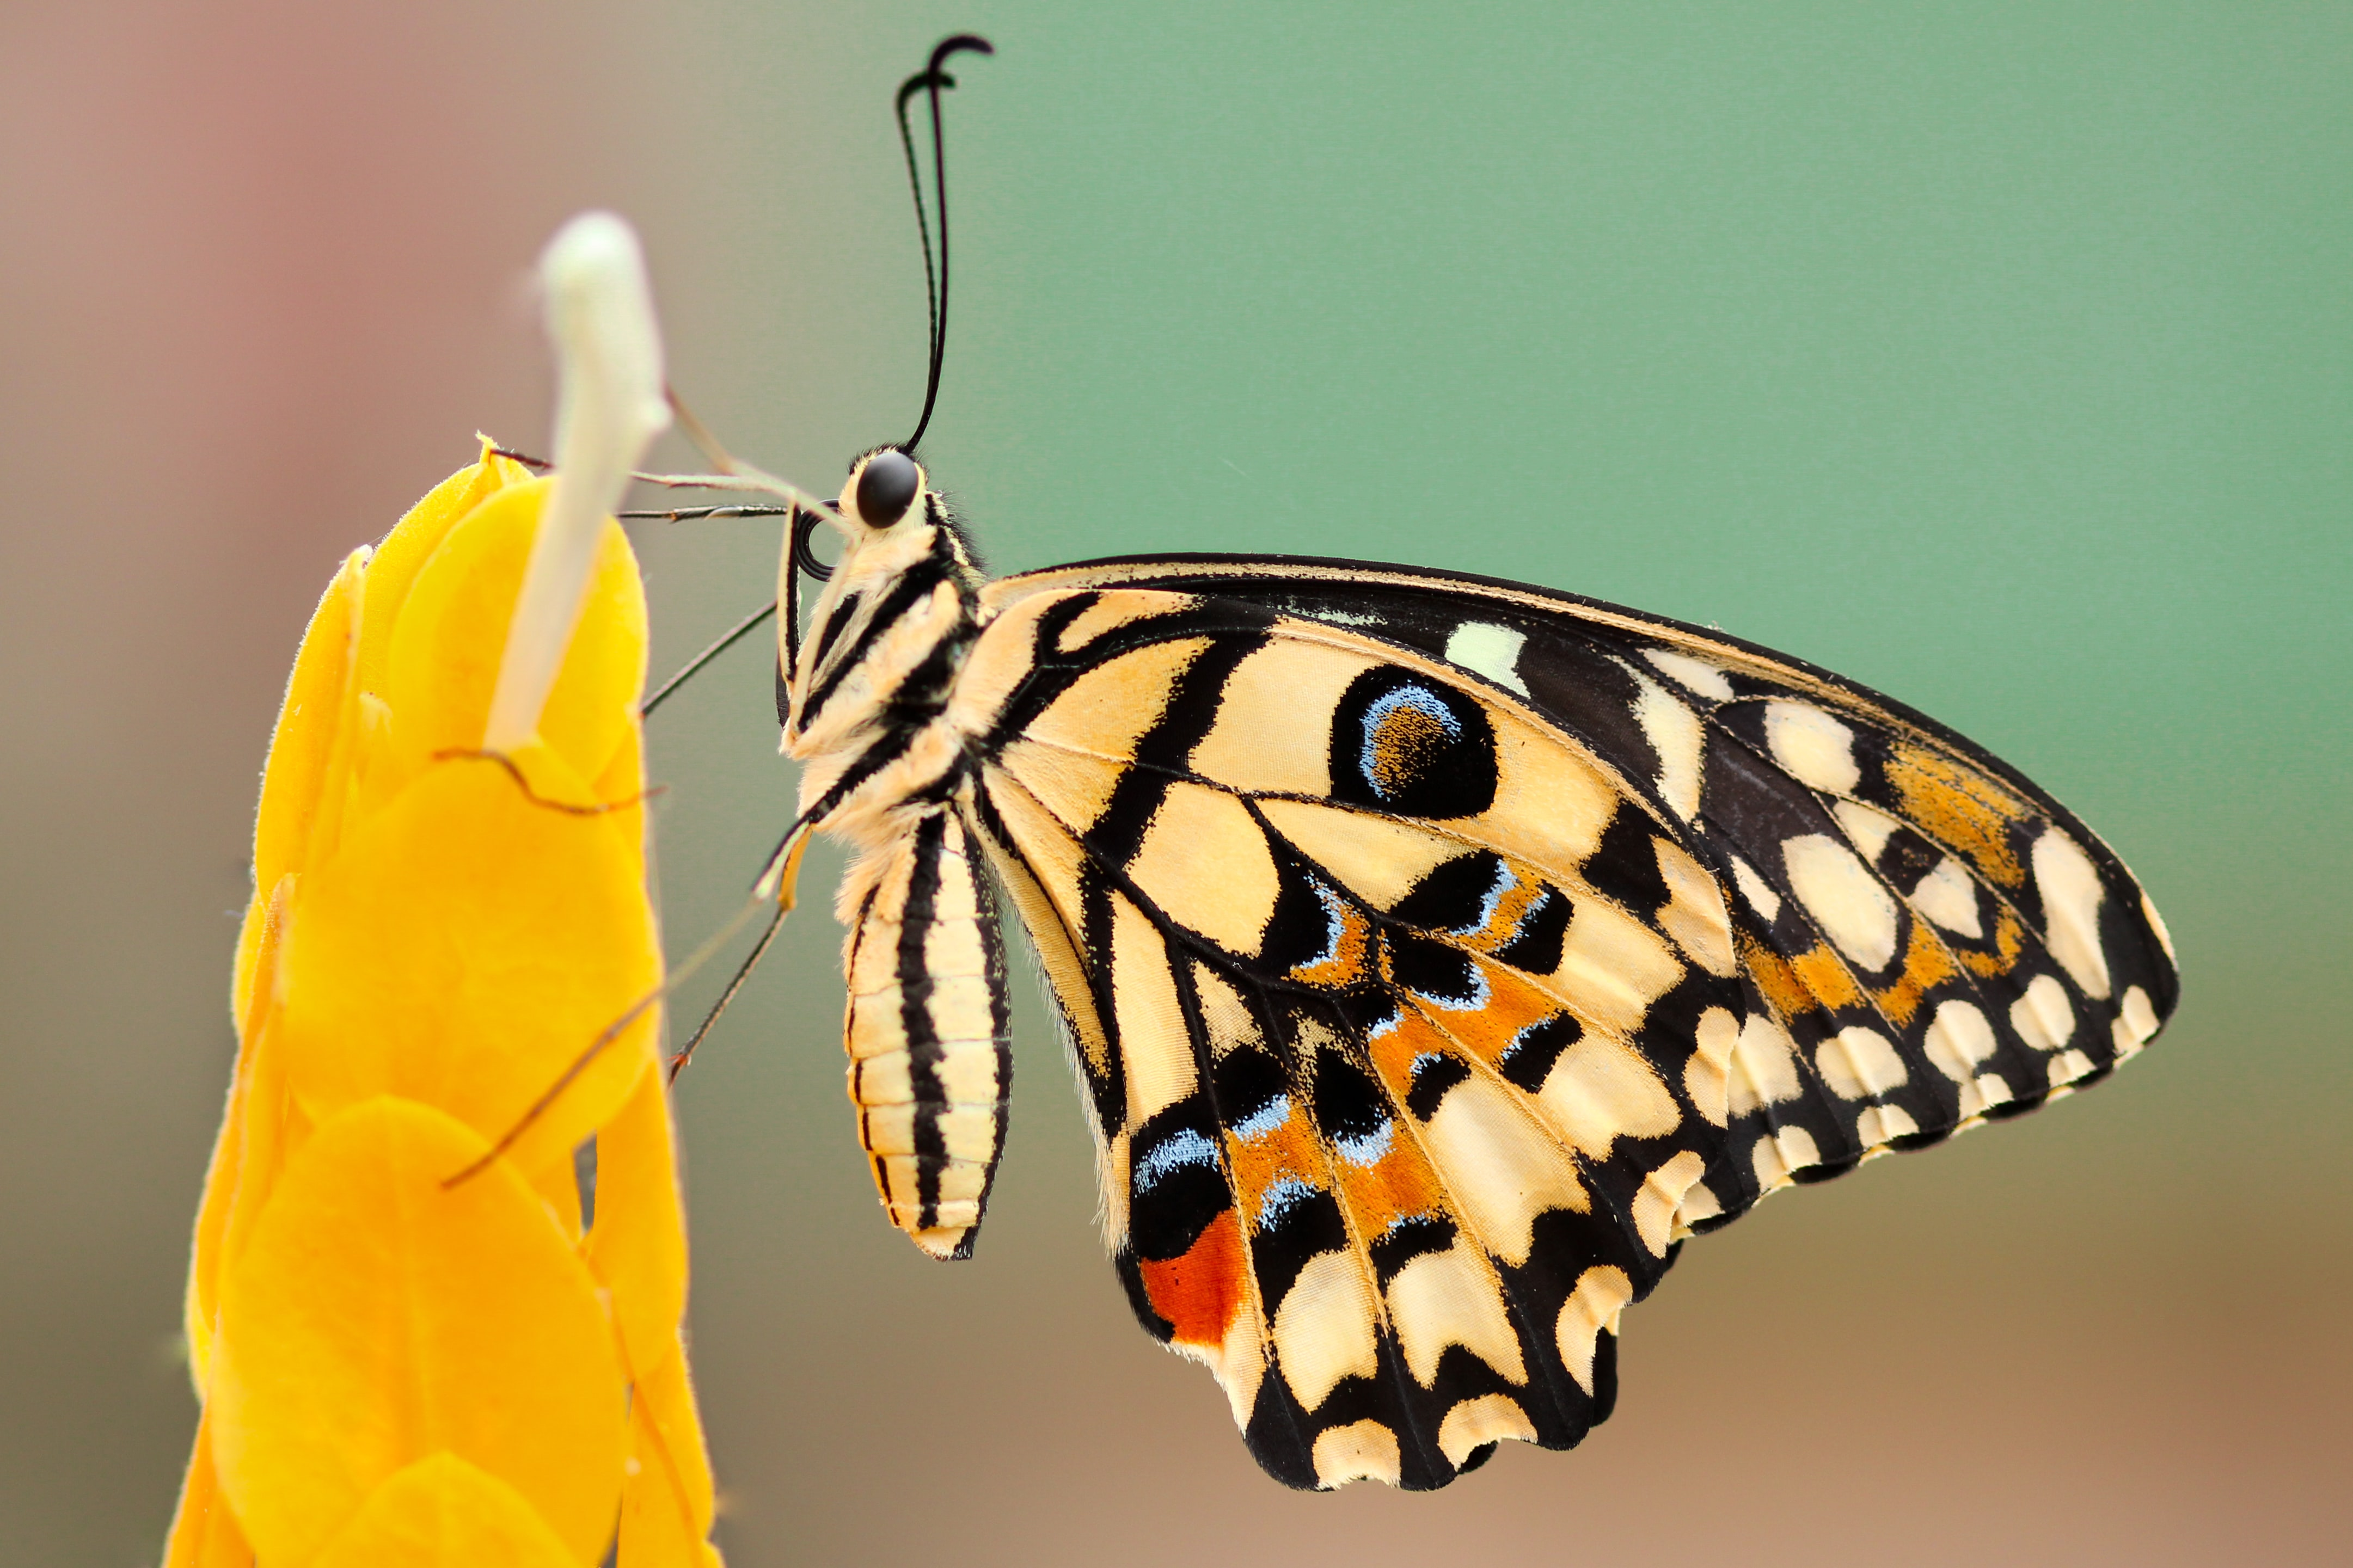 A butterfly feeding on a tall yellow flower